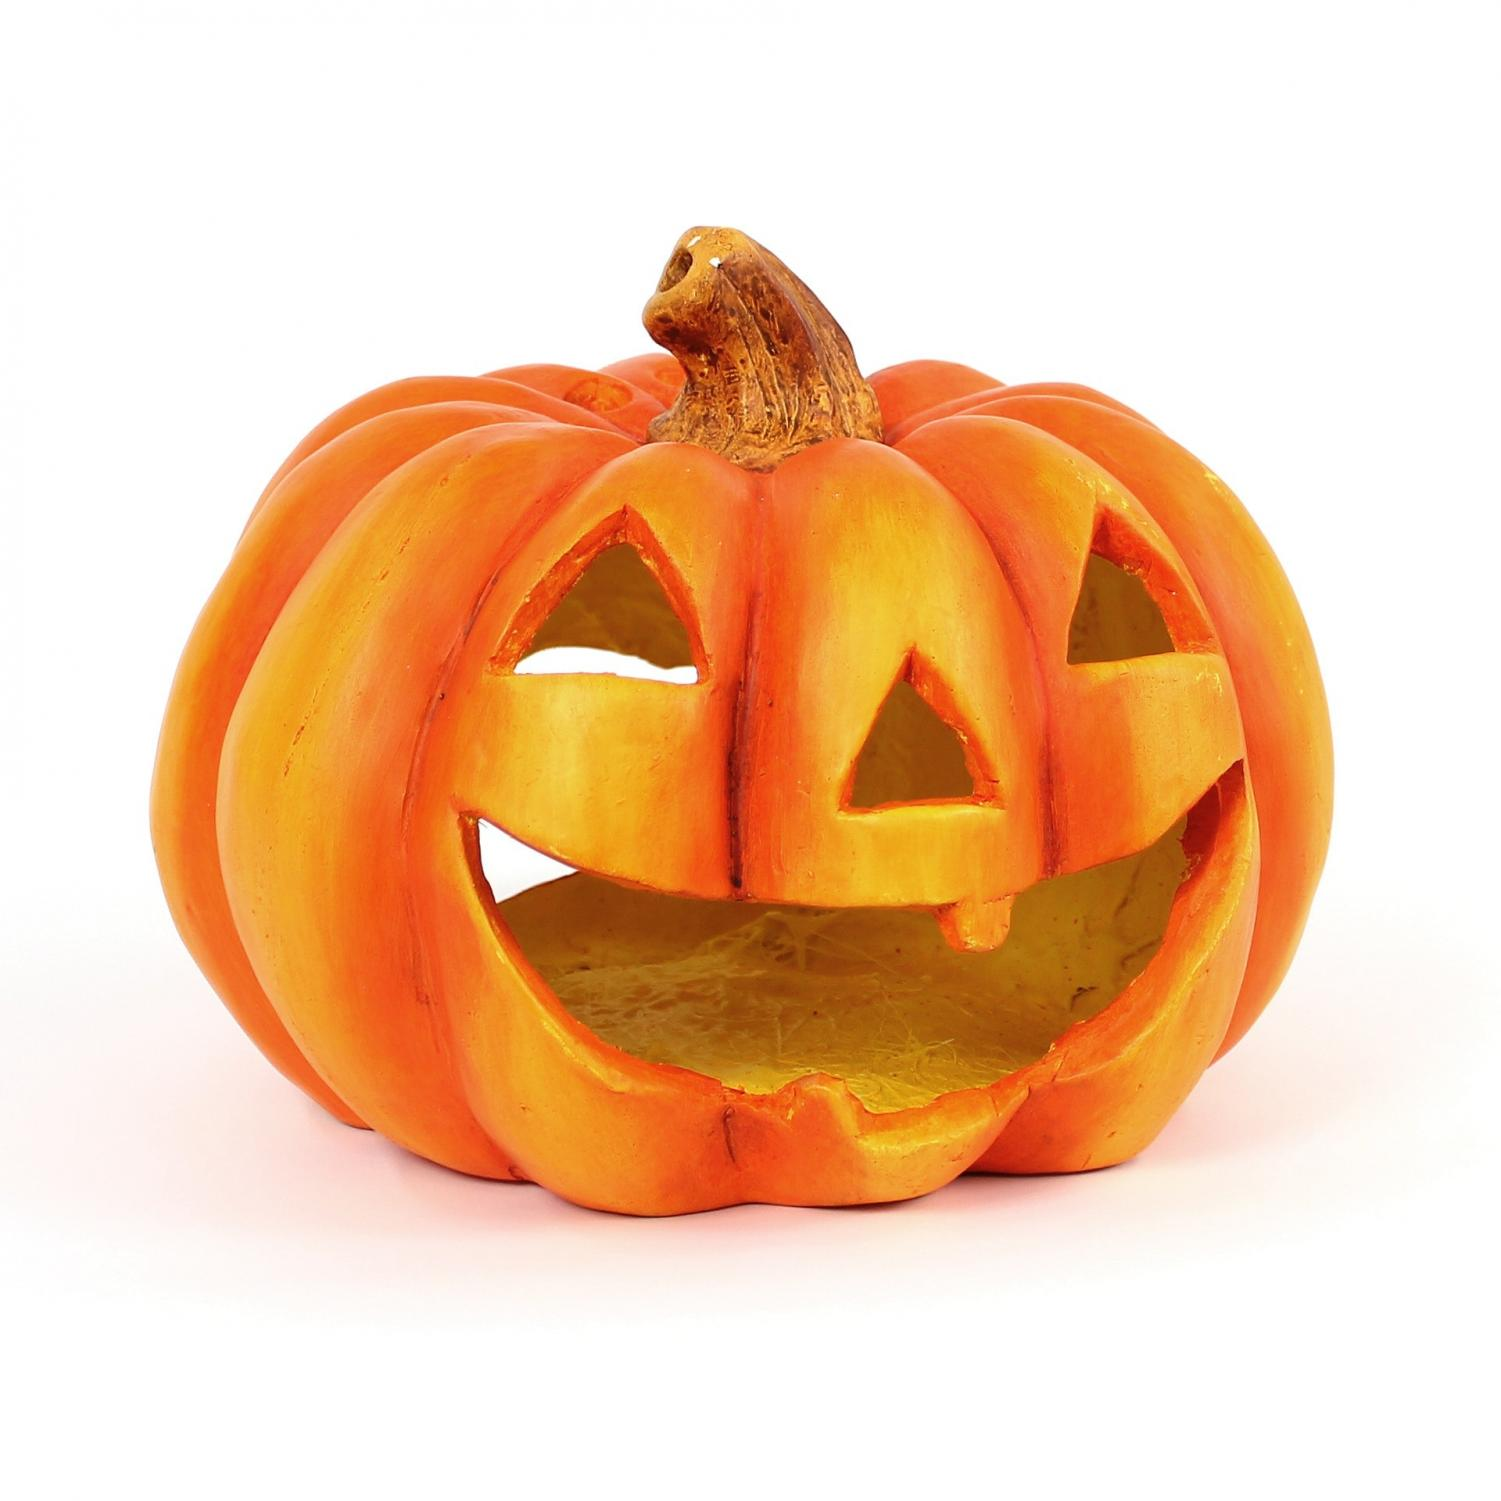 Spring-Ford High School currently does not give students the day after Halloween off.